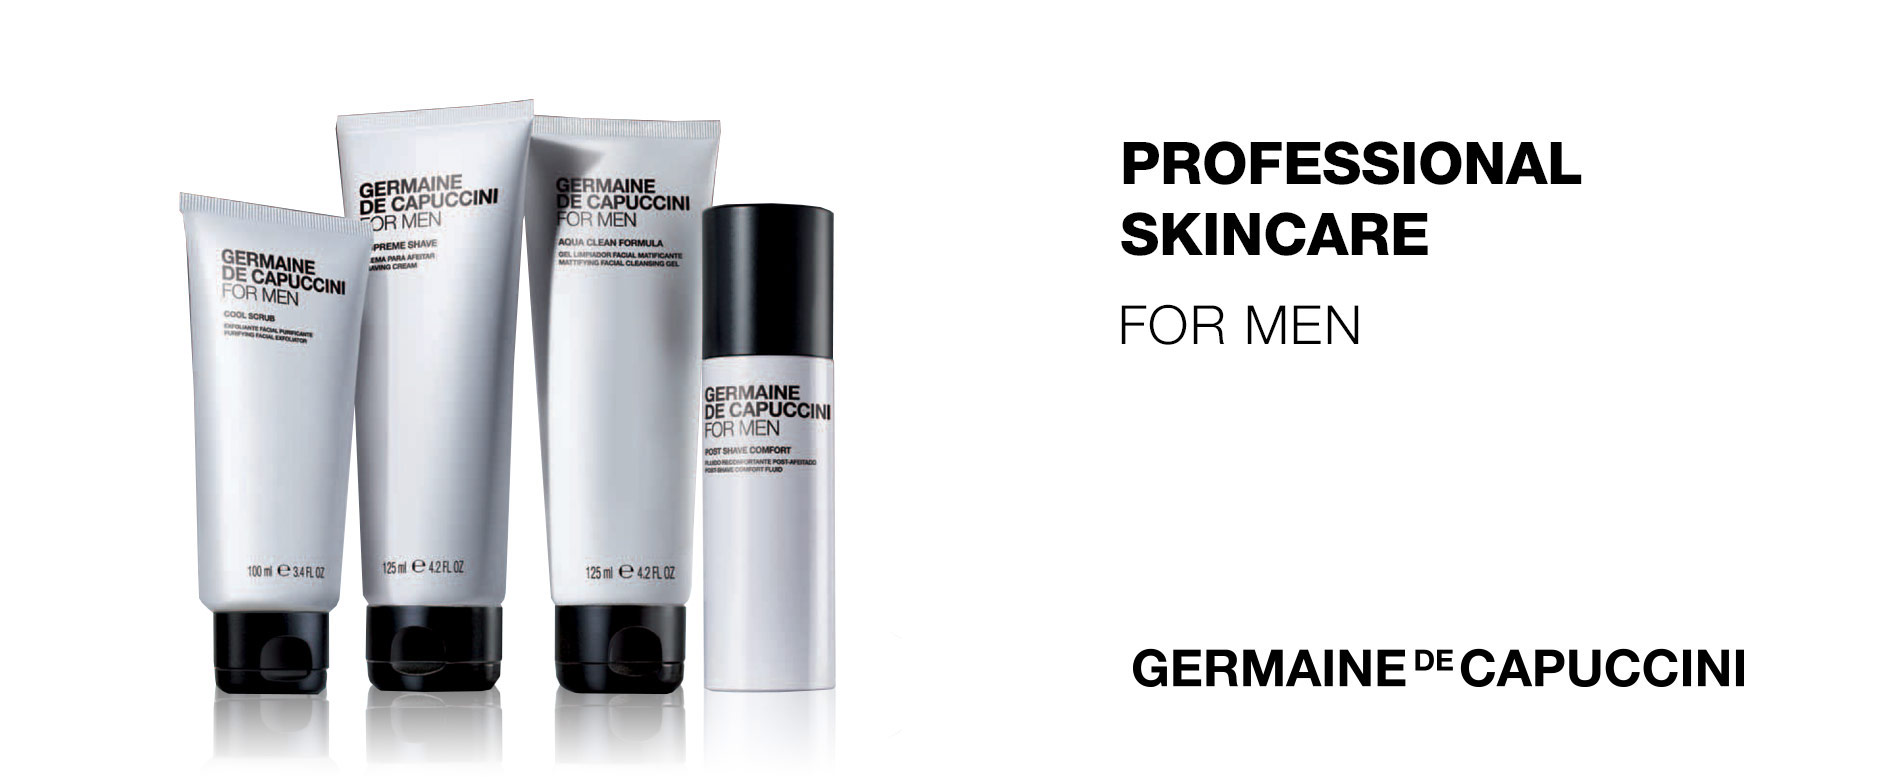 Professional Skincare For Men